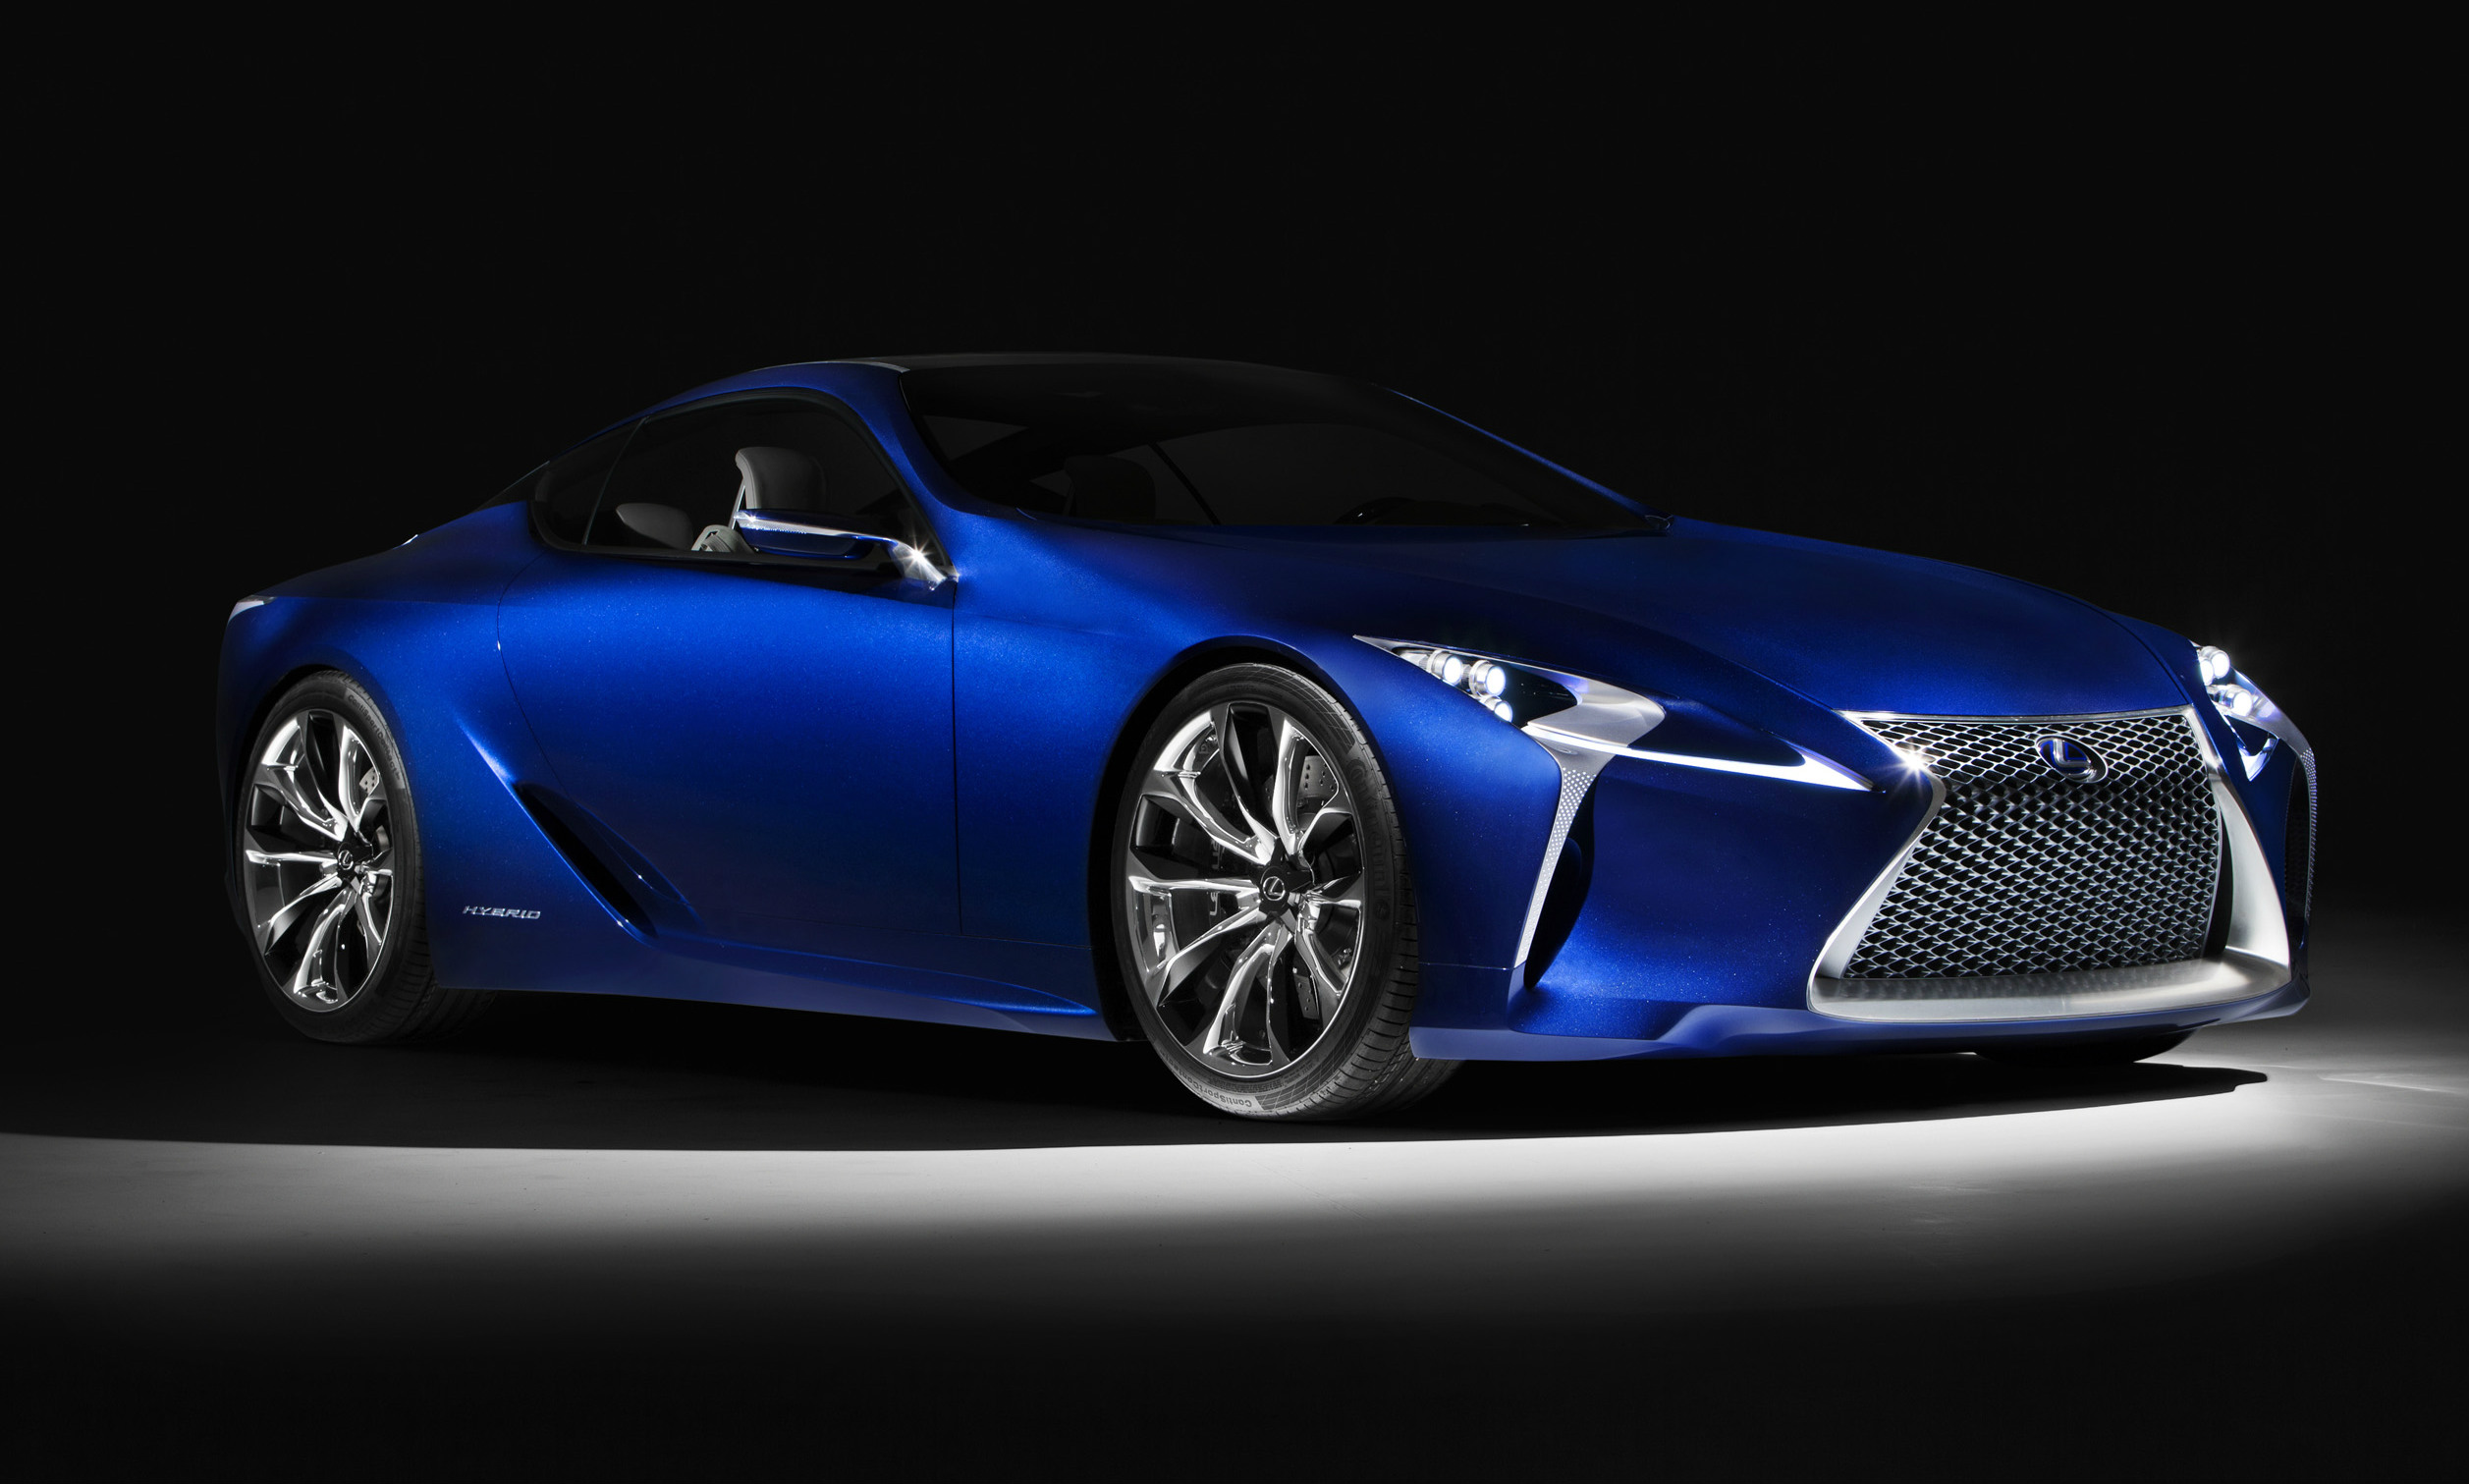 Lexus lf lc concept Aims To Foster Australian Design Talent With New Initiatives Cars Pictures Amazing Desktop Backgrounds